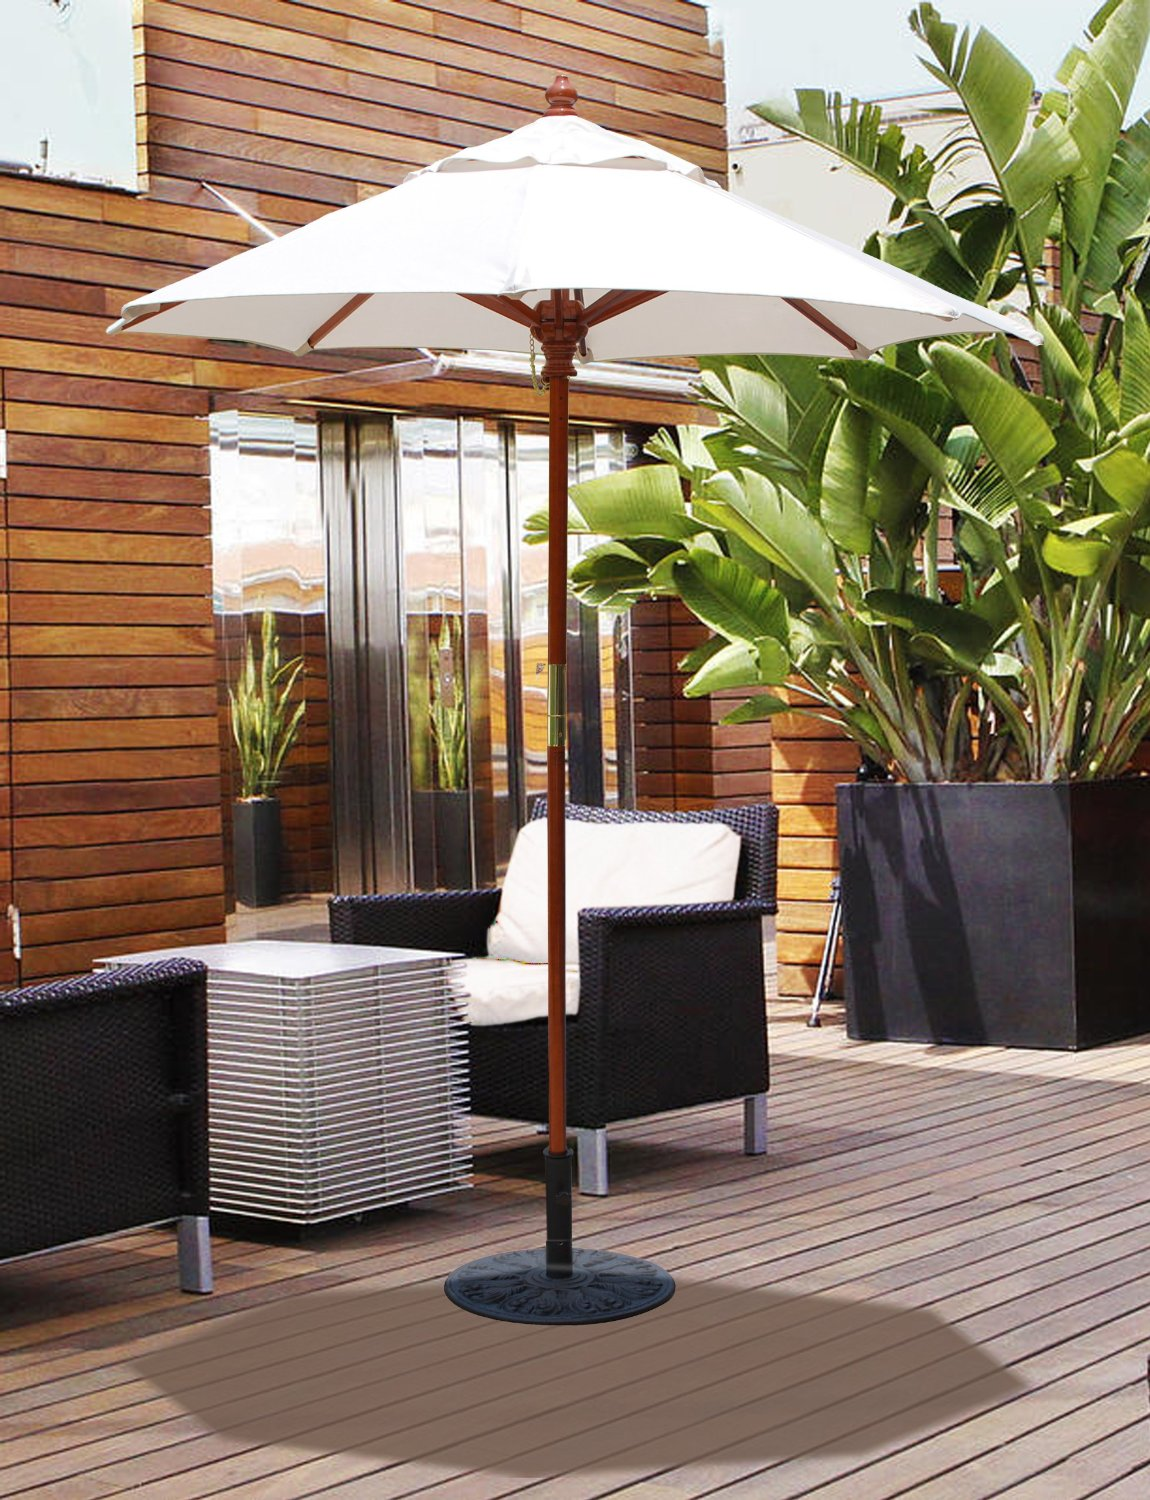 the 5 best patio umbrella styles | umbrellify Best Outdoor Umbrella